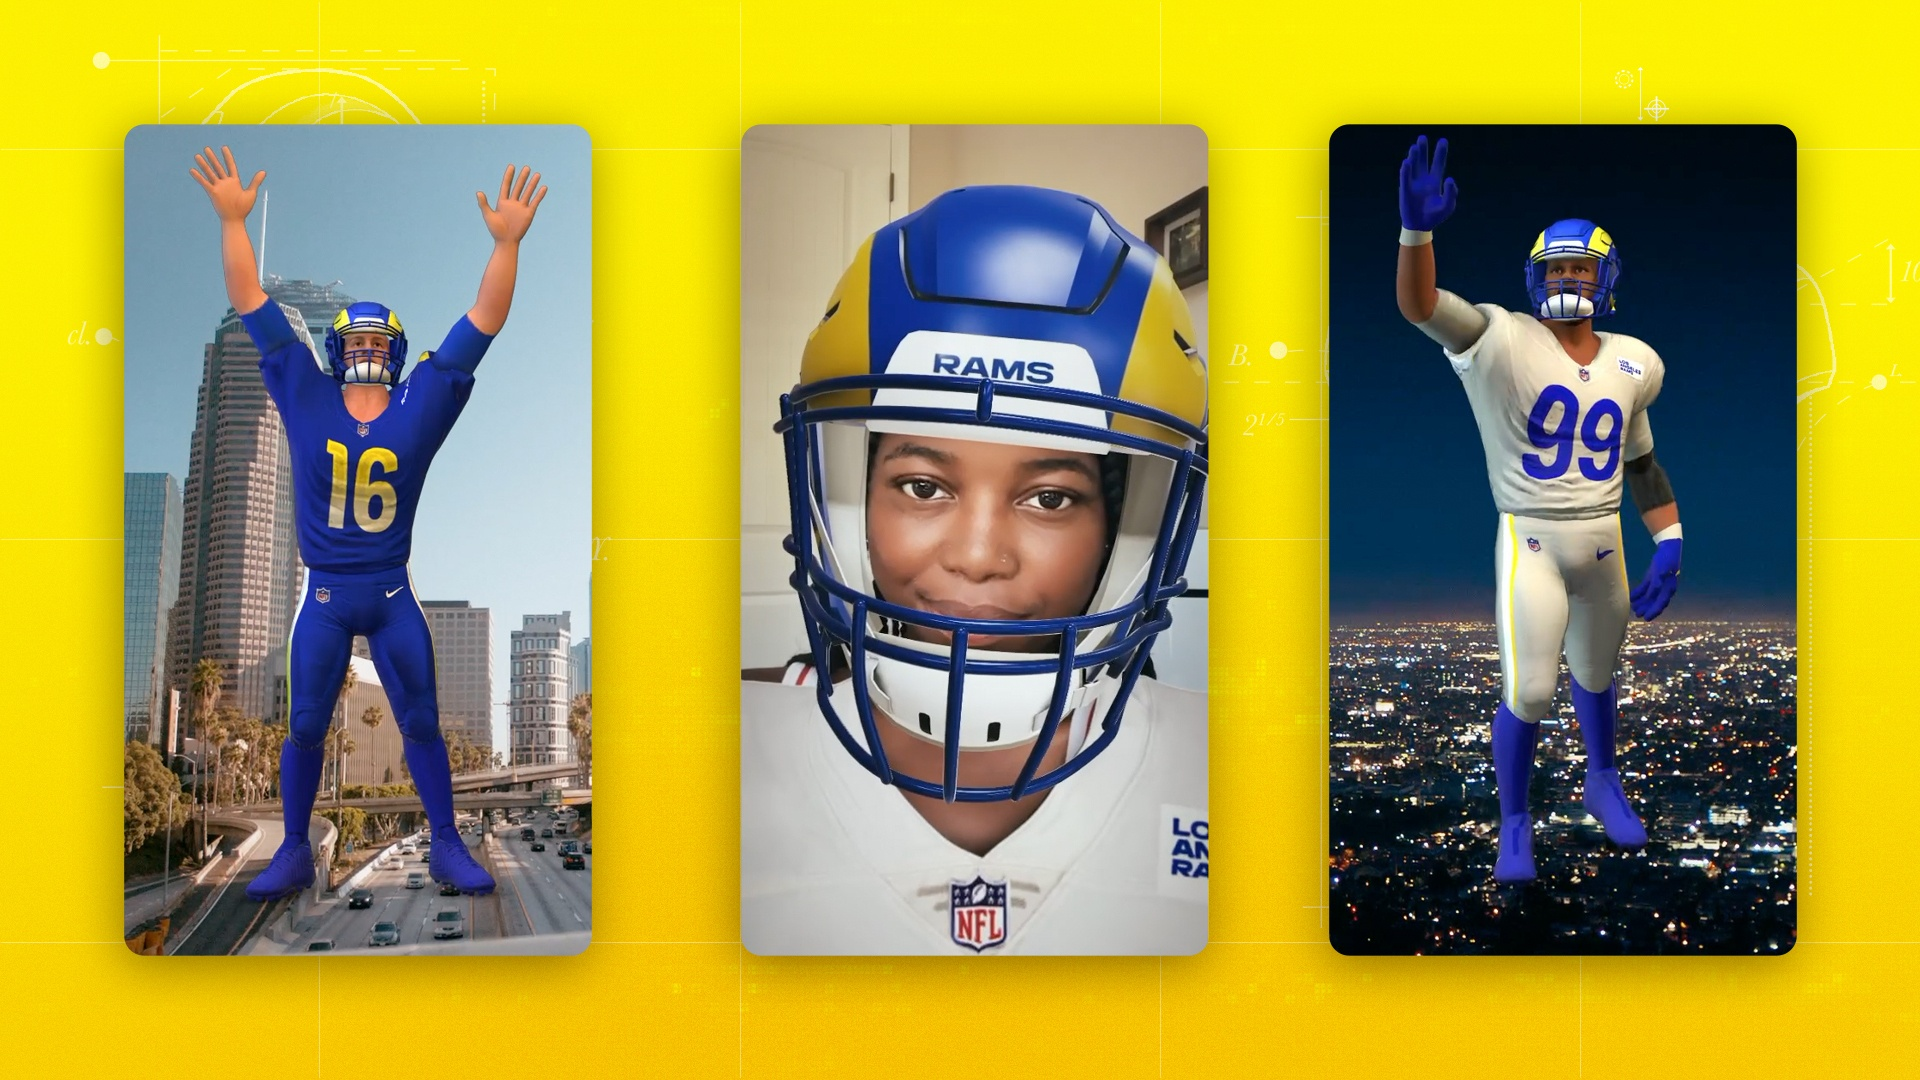 Thumbnail for Rams x Snapchat - First ever NFL uniform reveal